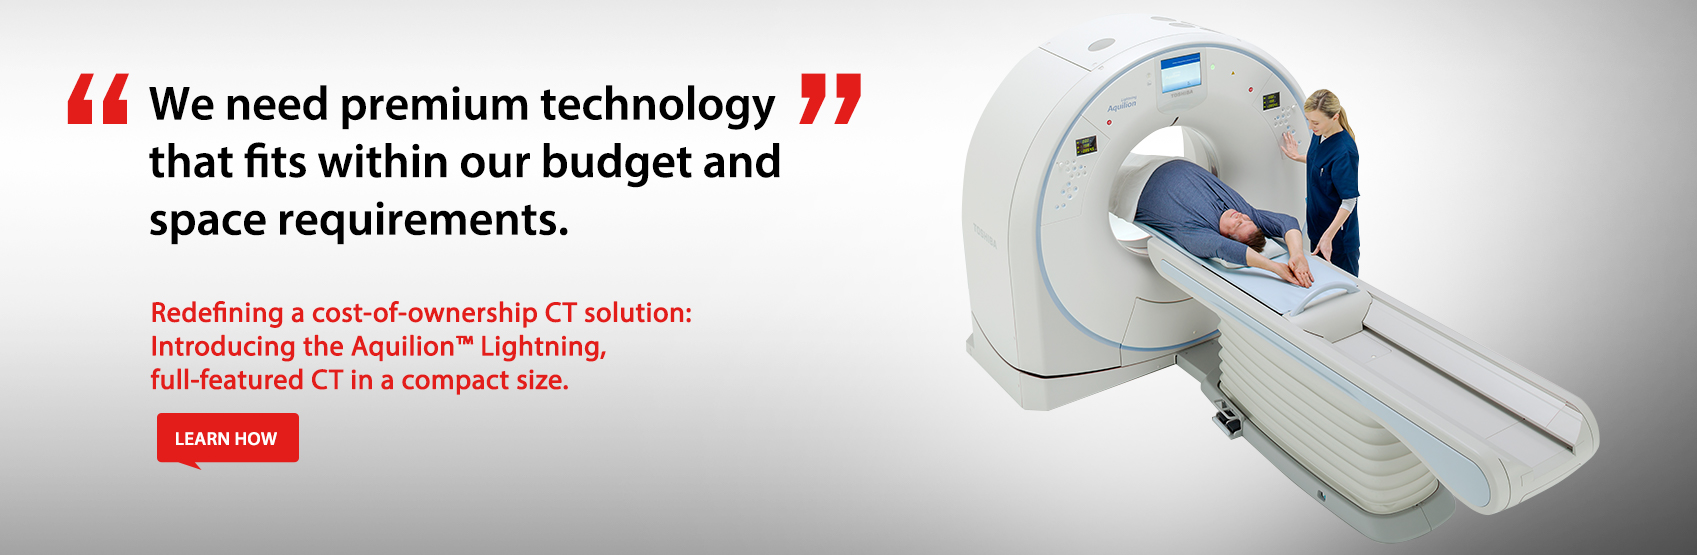 Redefining a cost-of-ownership CT solution: Introducing the Aquilion™ Lightning, full-featured CT in a compact size.